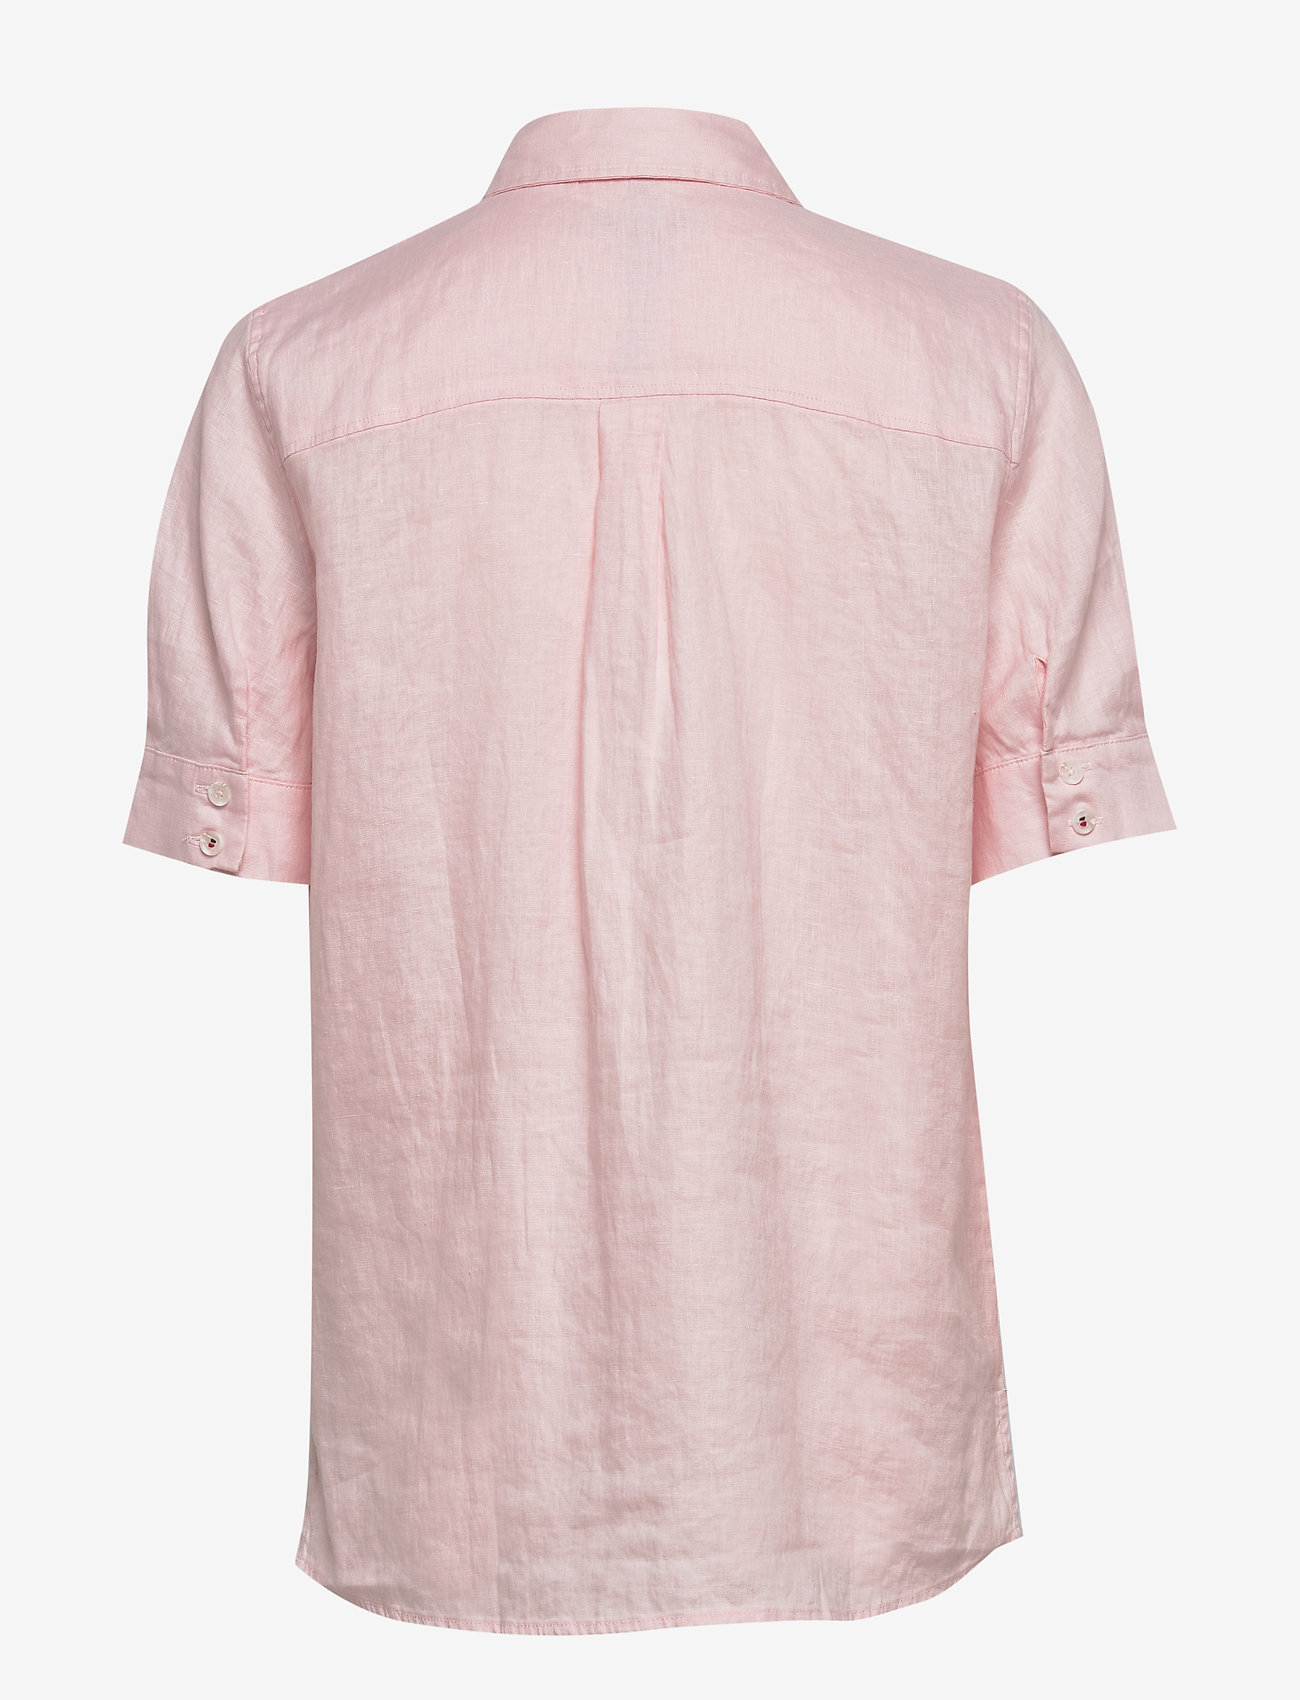 Tommy Hilfiger - TH ESSENTIAL PENELOP - short-sleeved shirts - frosted pink